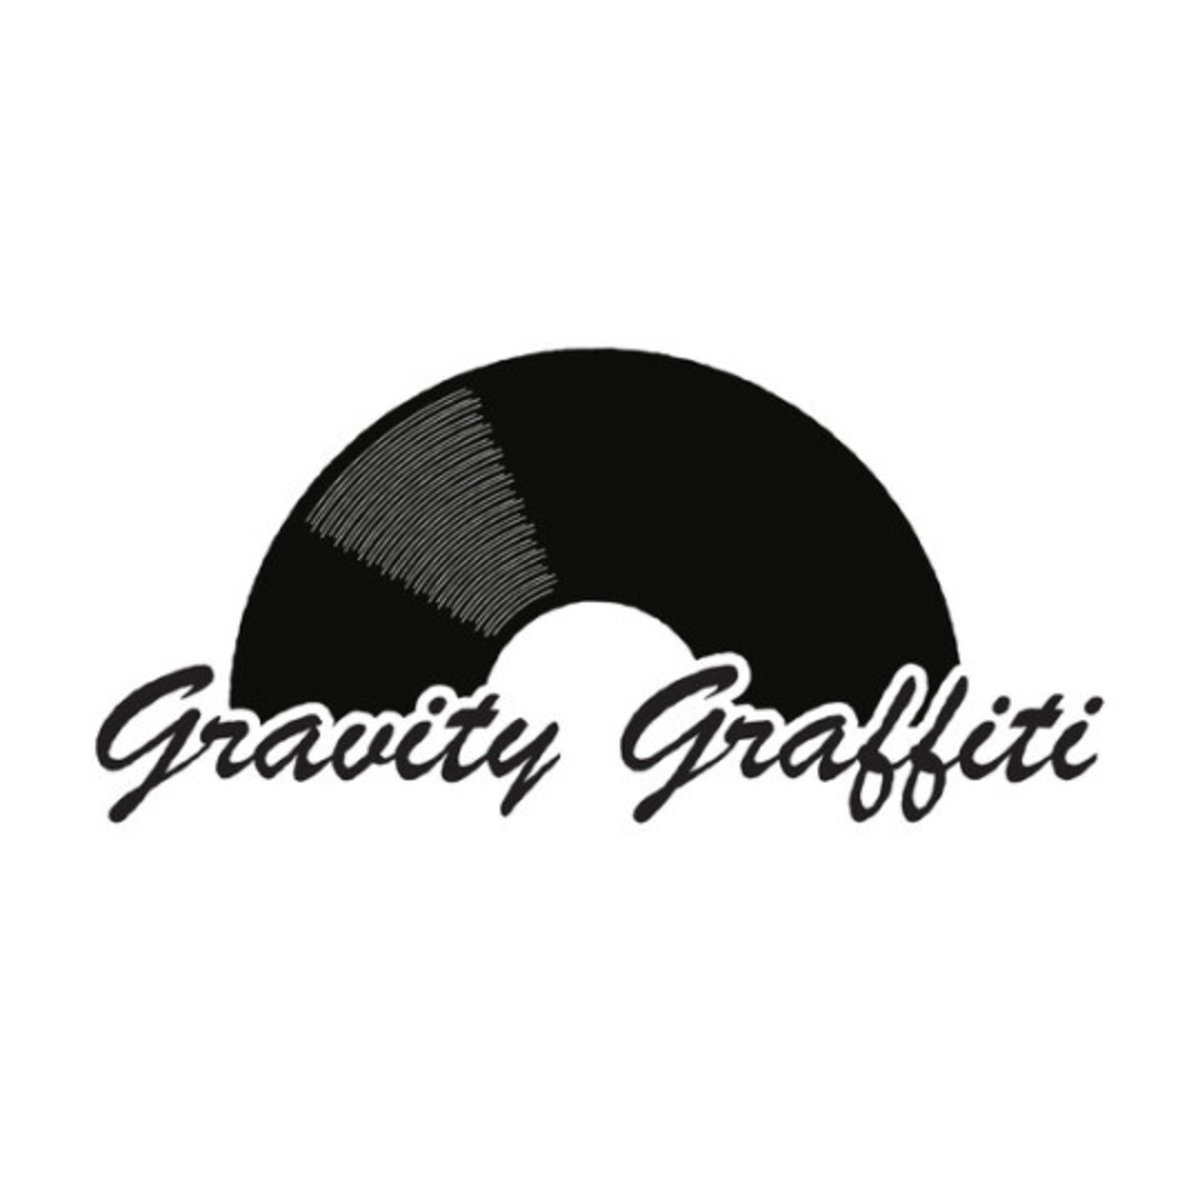 Gravity Graffiti